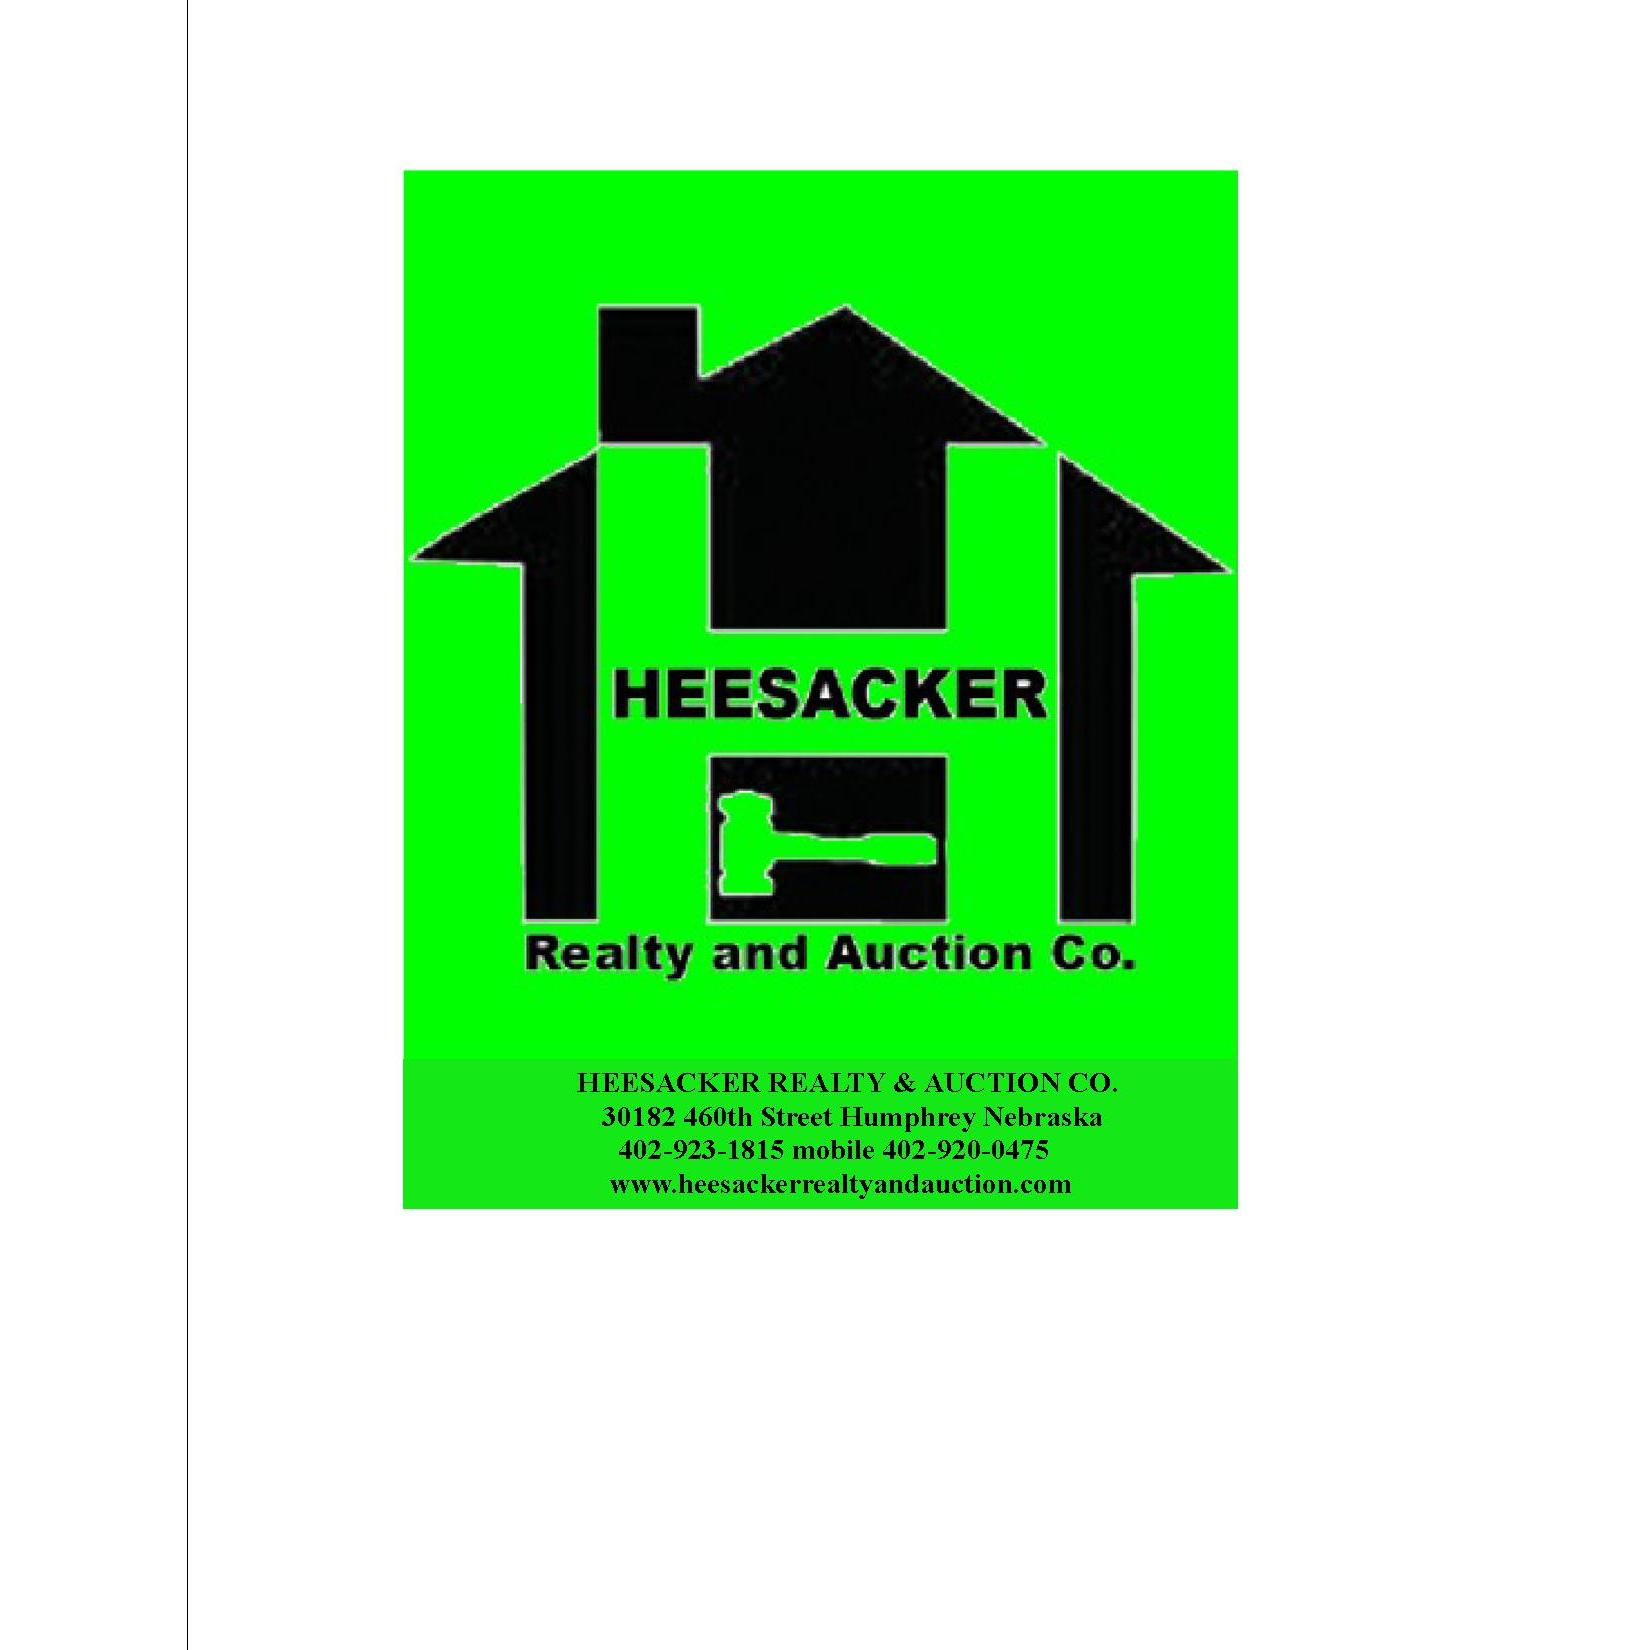 Heesacker Realty and Auction Co. Logo